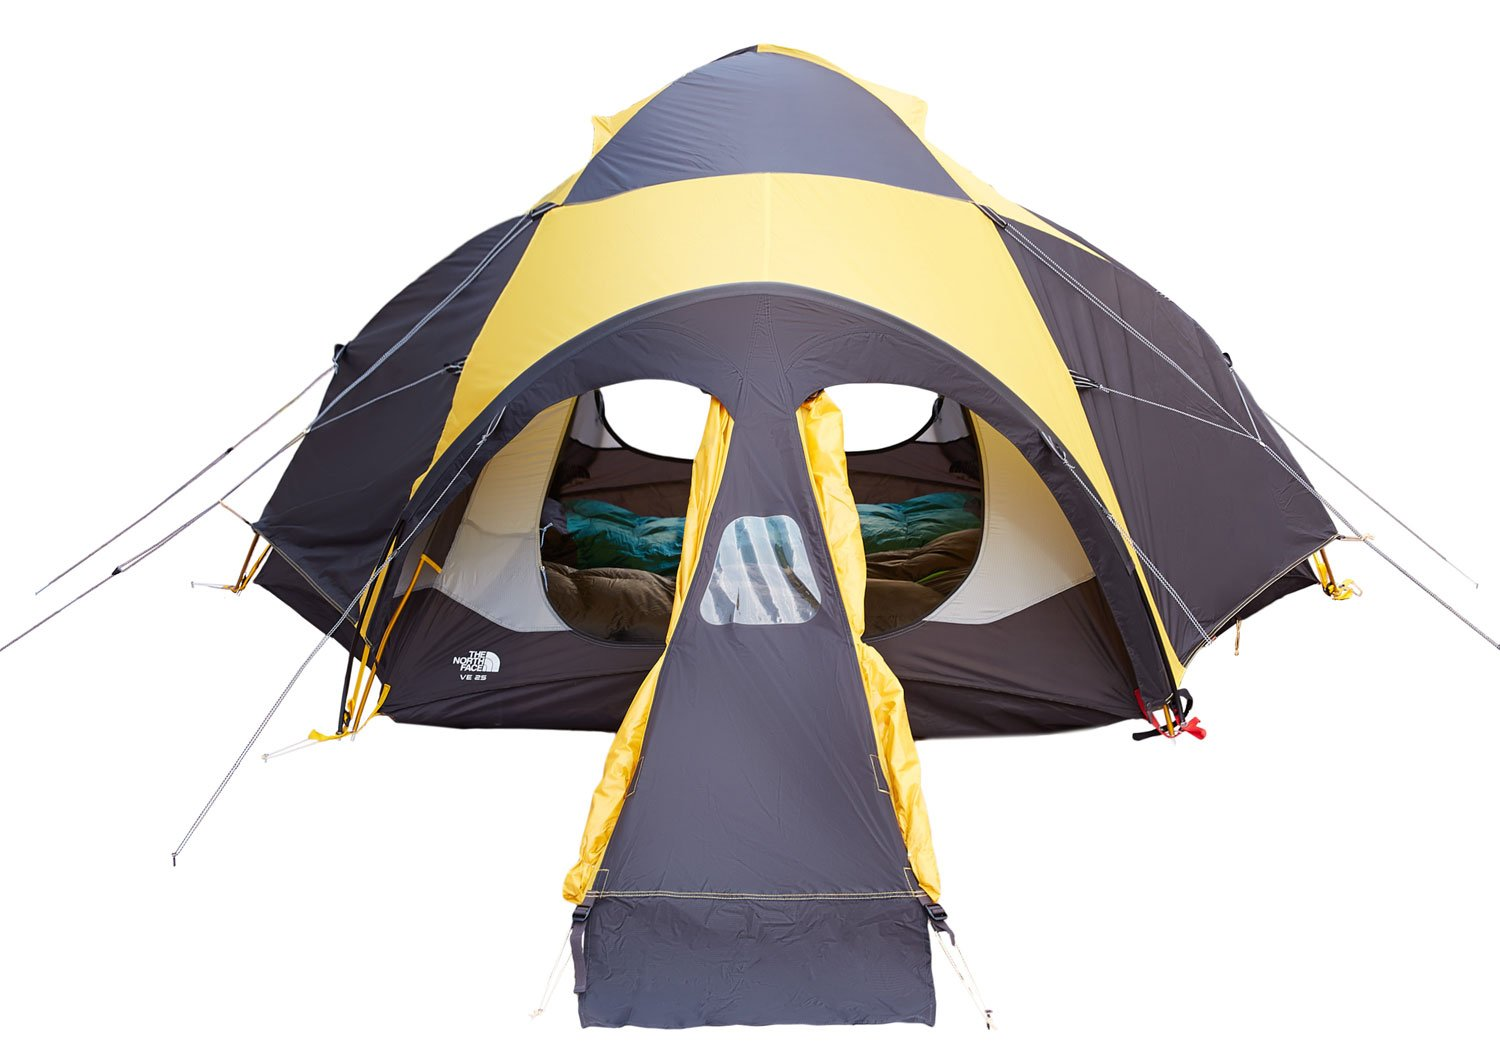 Amazon.com The North Face VE 25 Tent Summit Gold/Asphalt Grey One Size Sports u0026 Outdoors  sc 1 st  Amazon.com & Amazon.com: The North Face VE 25 Tent Summit Gold/Asphalt Grey One ...